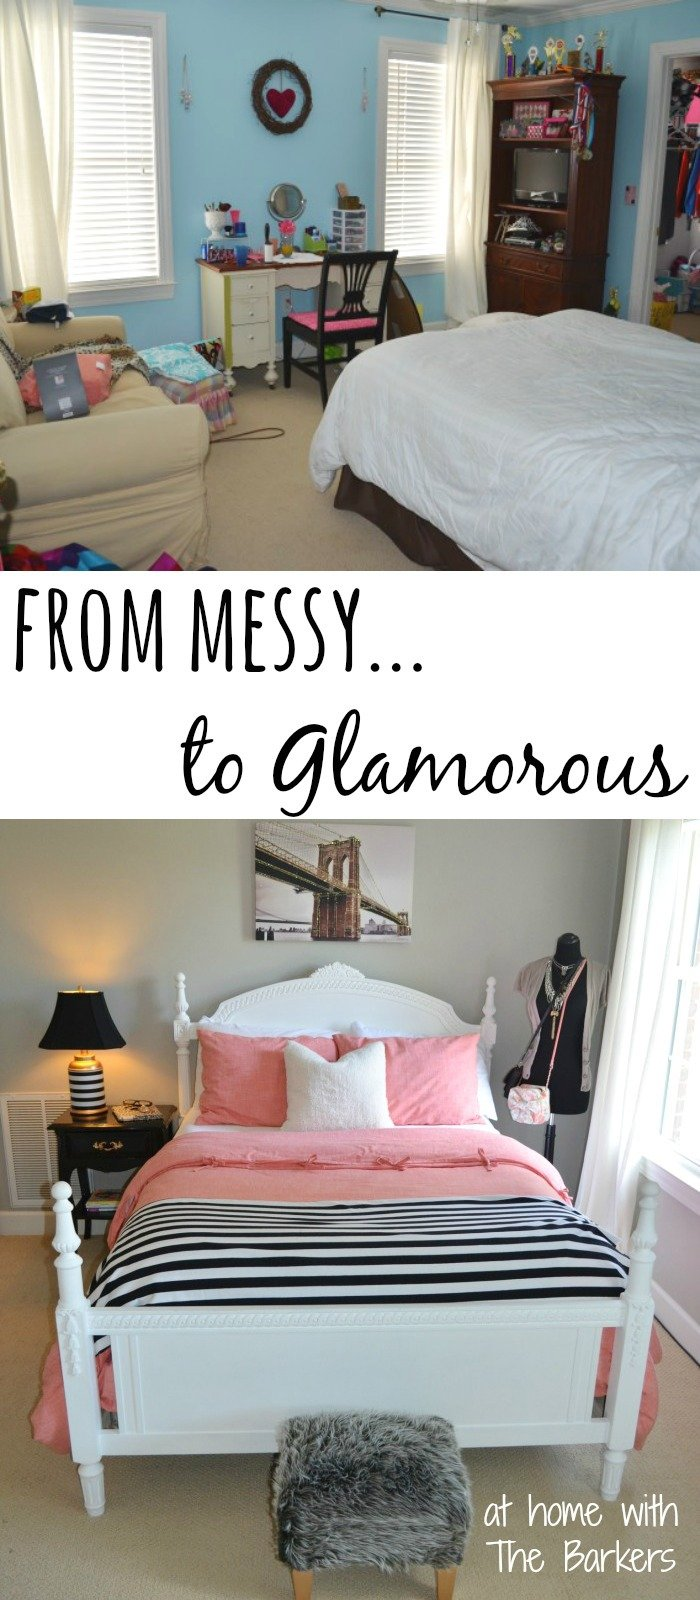 12.Teen Girl Room Makeover From Messy to Glamorous by simphome.com